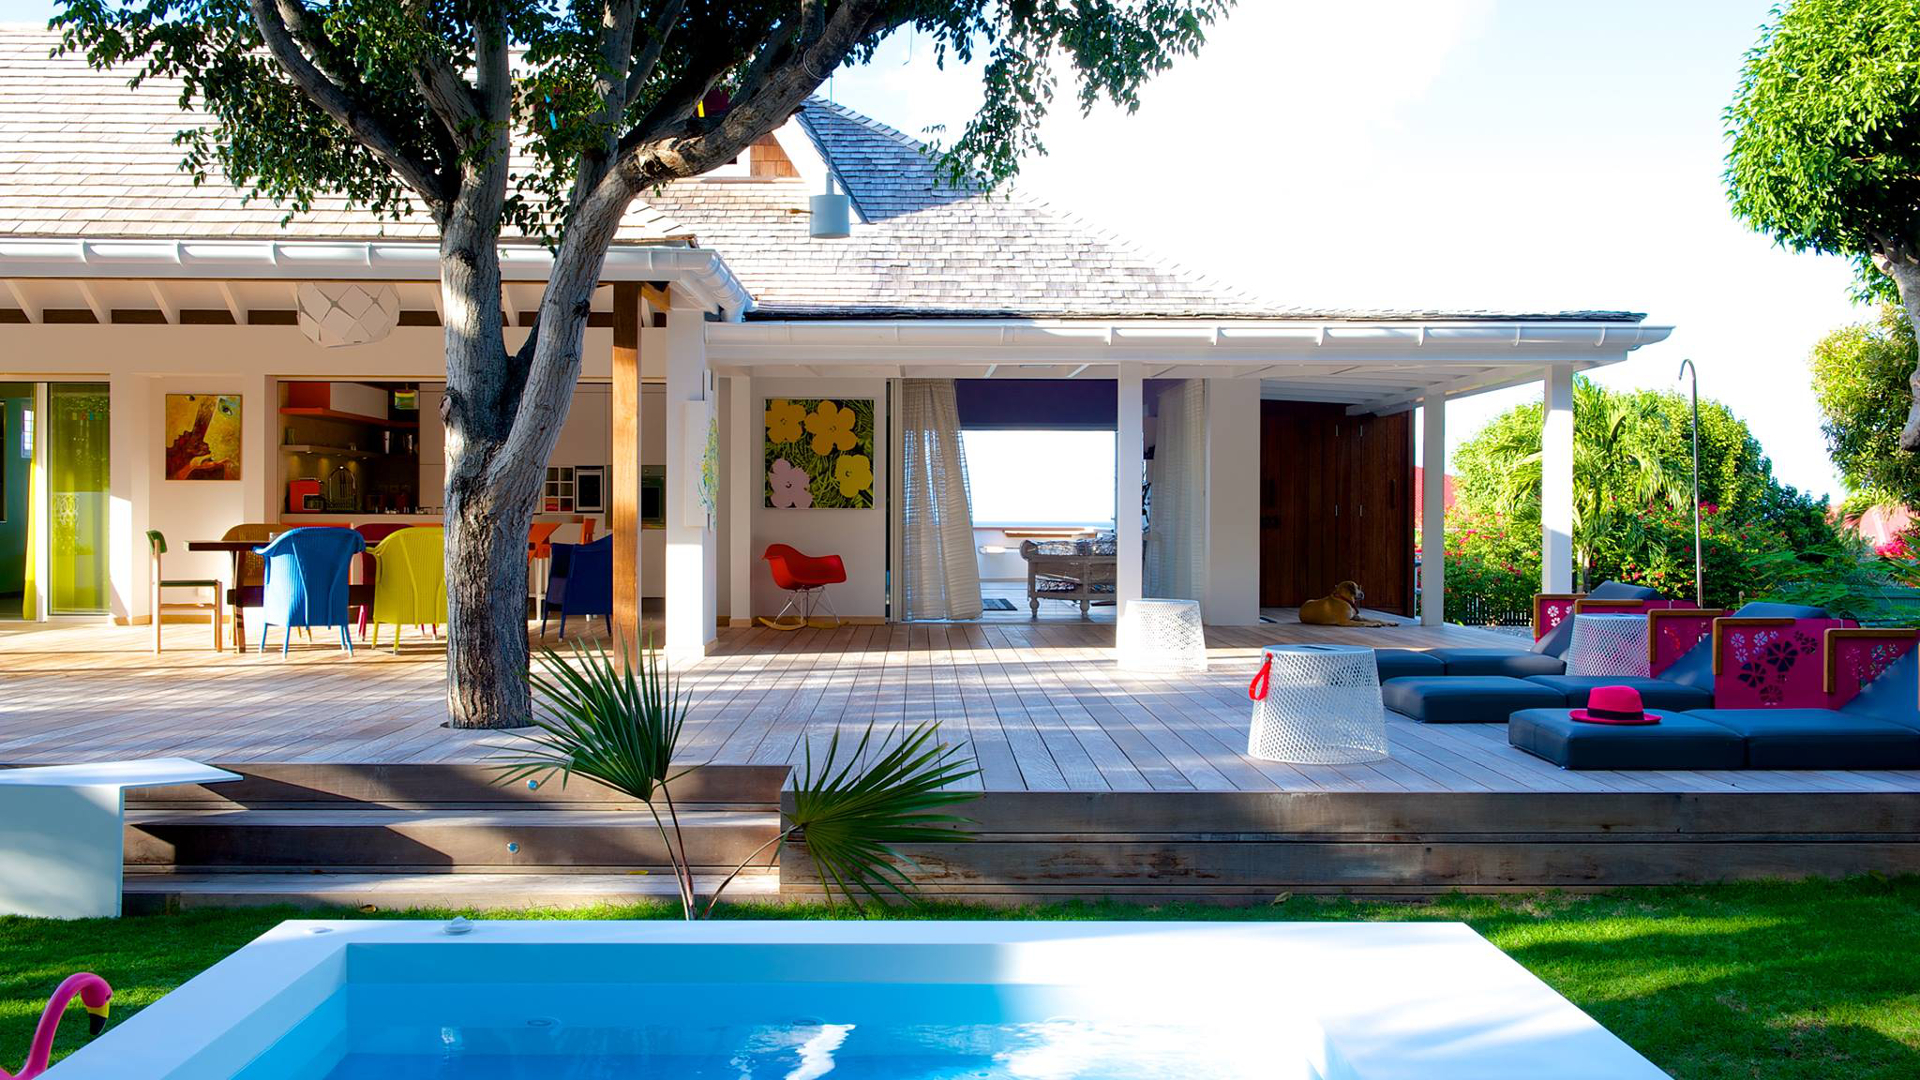 Best Island Beaches For Partying Mykonos St Barts: An Affordable Option On Spendy St. Barts